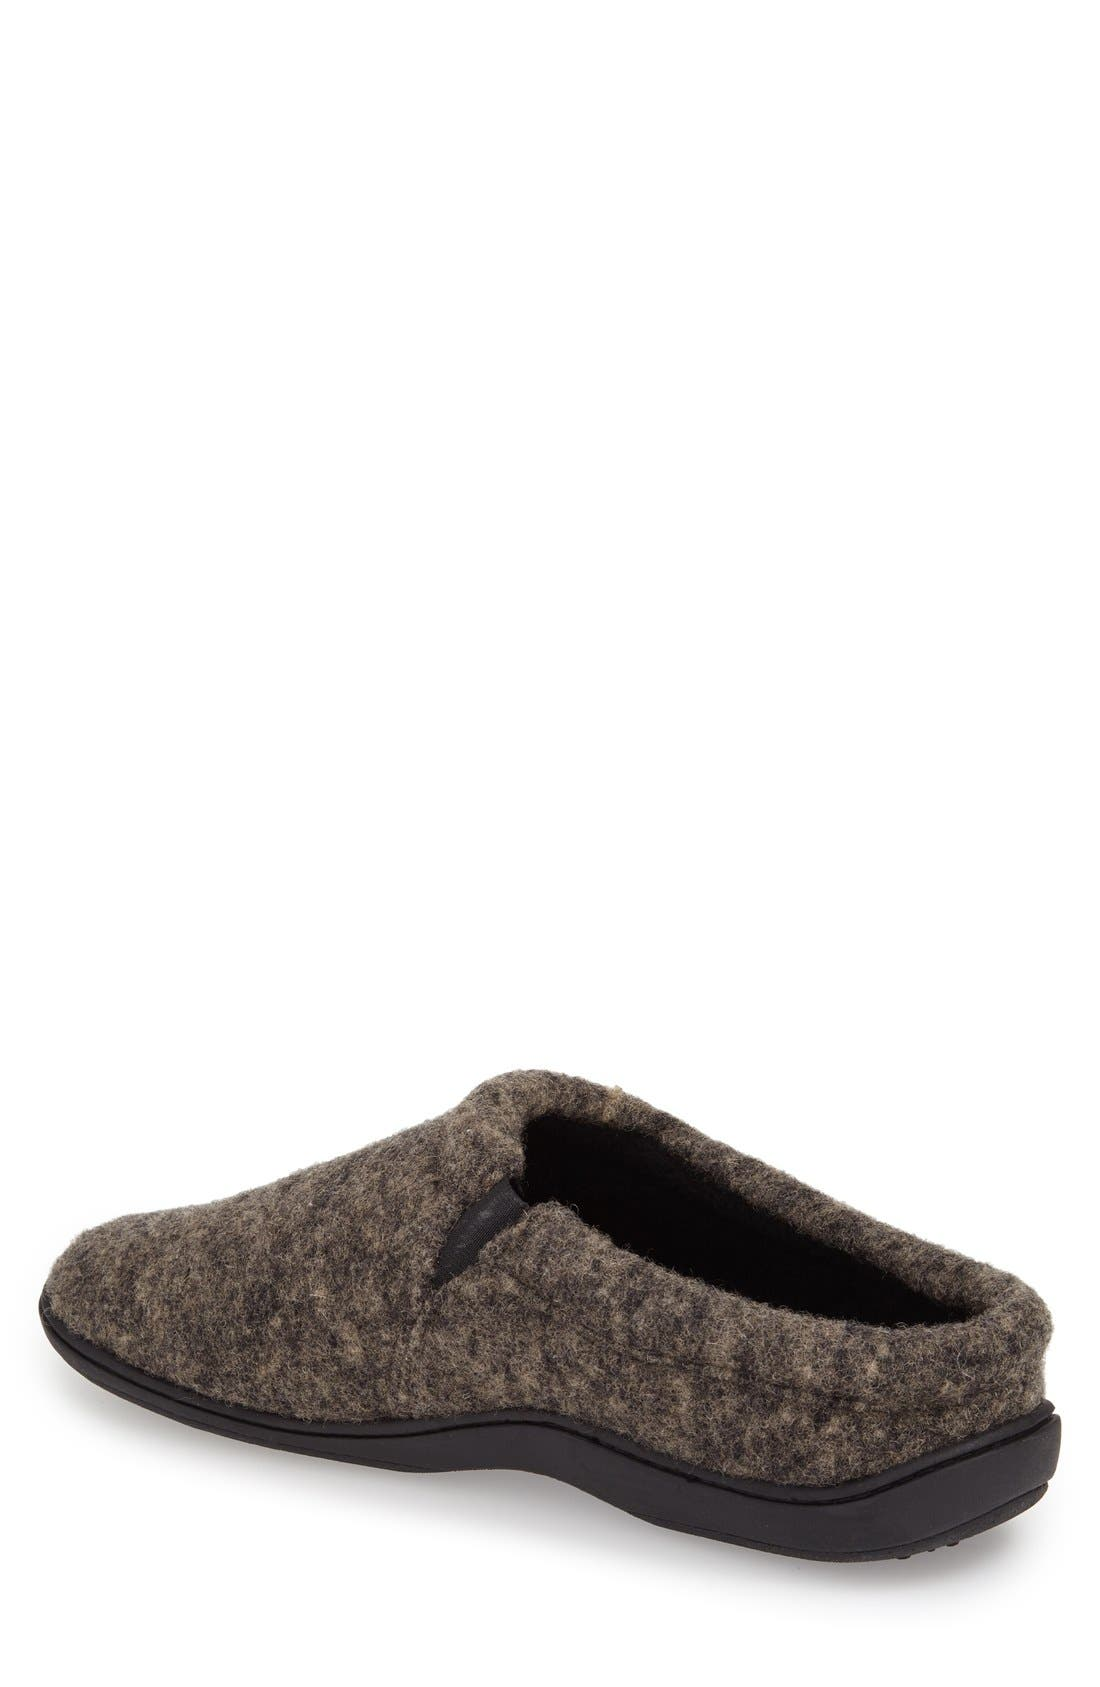 Alternate Image 2  - Acorn 'Digby' Slipper (Men)